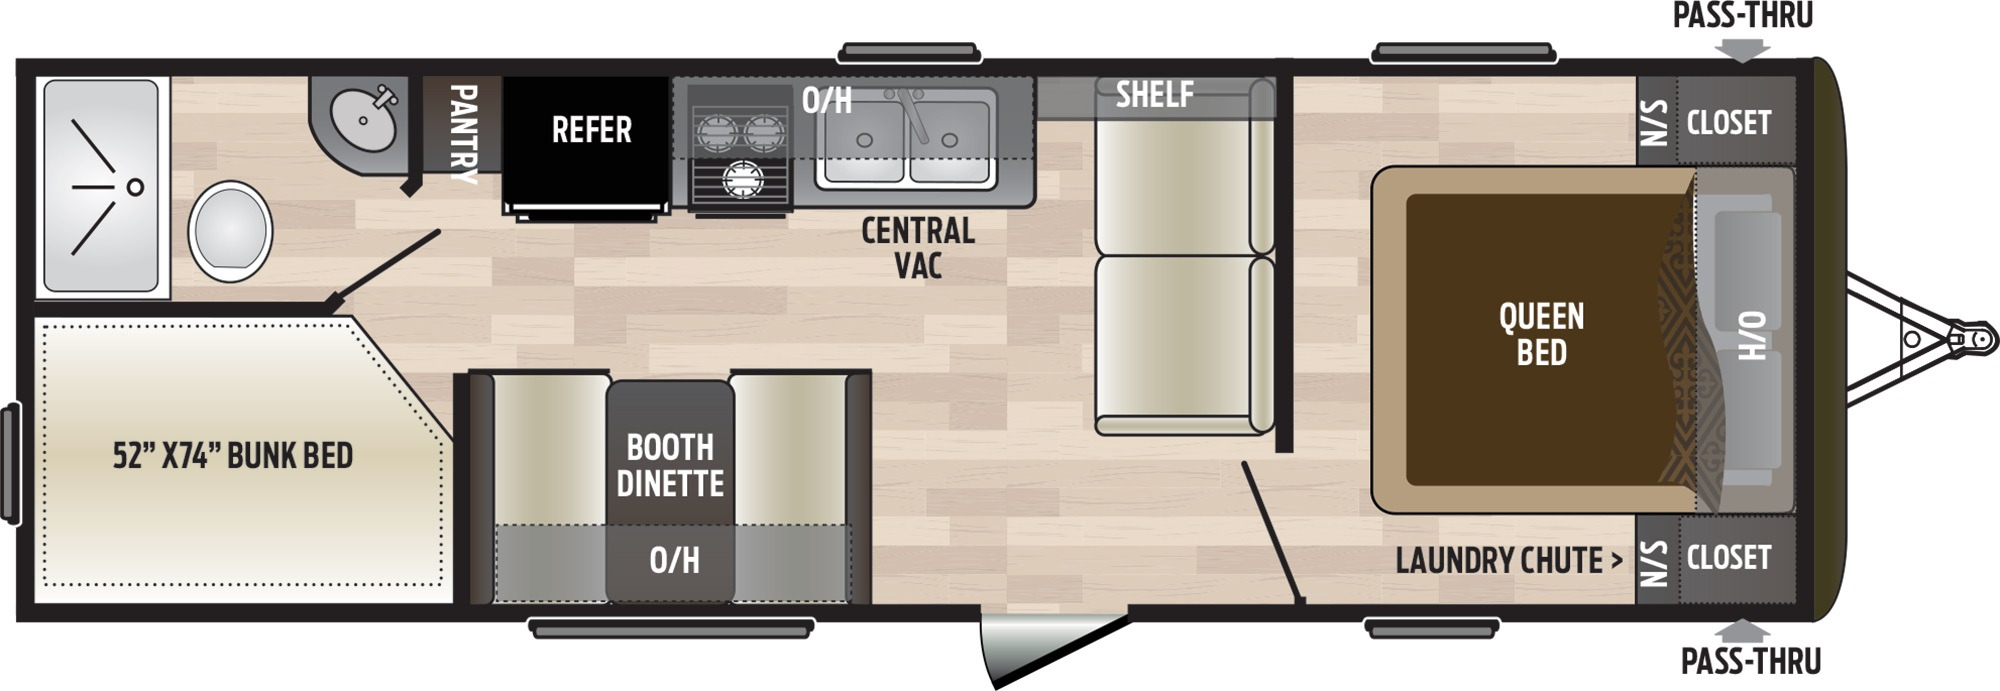 View Floor Plan for 2020 KEYSTONE HIDEOUT 262LHS